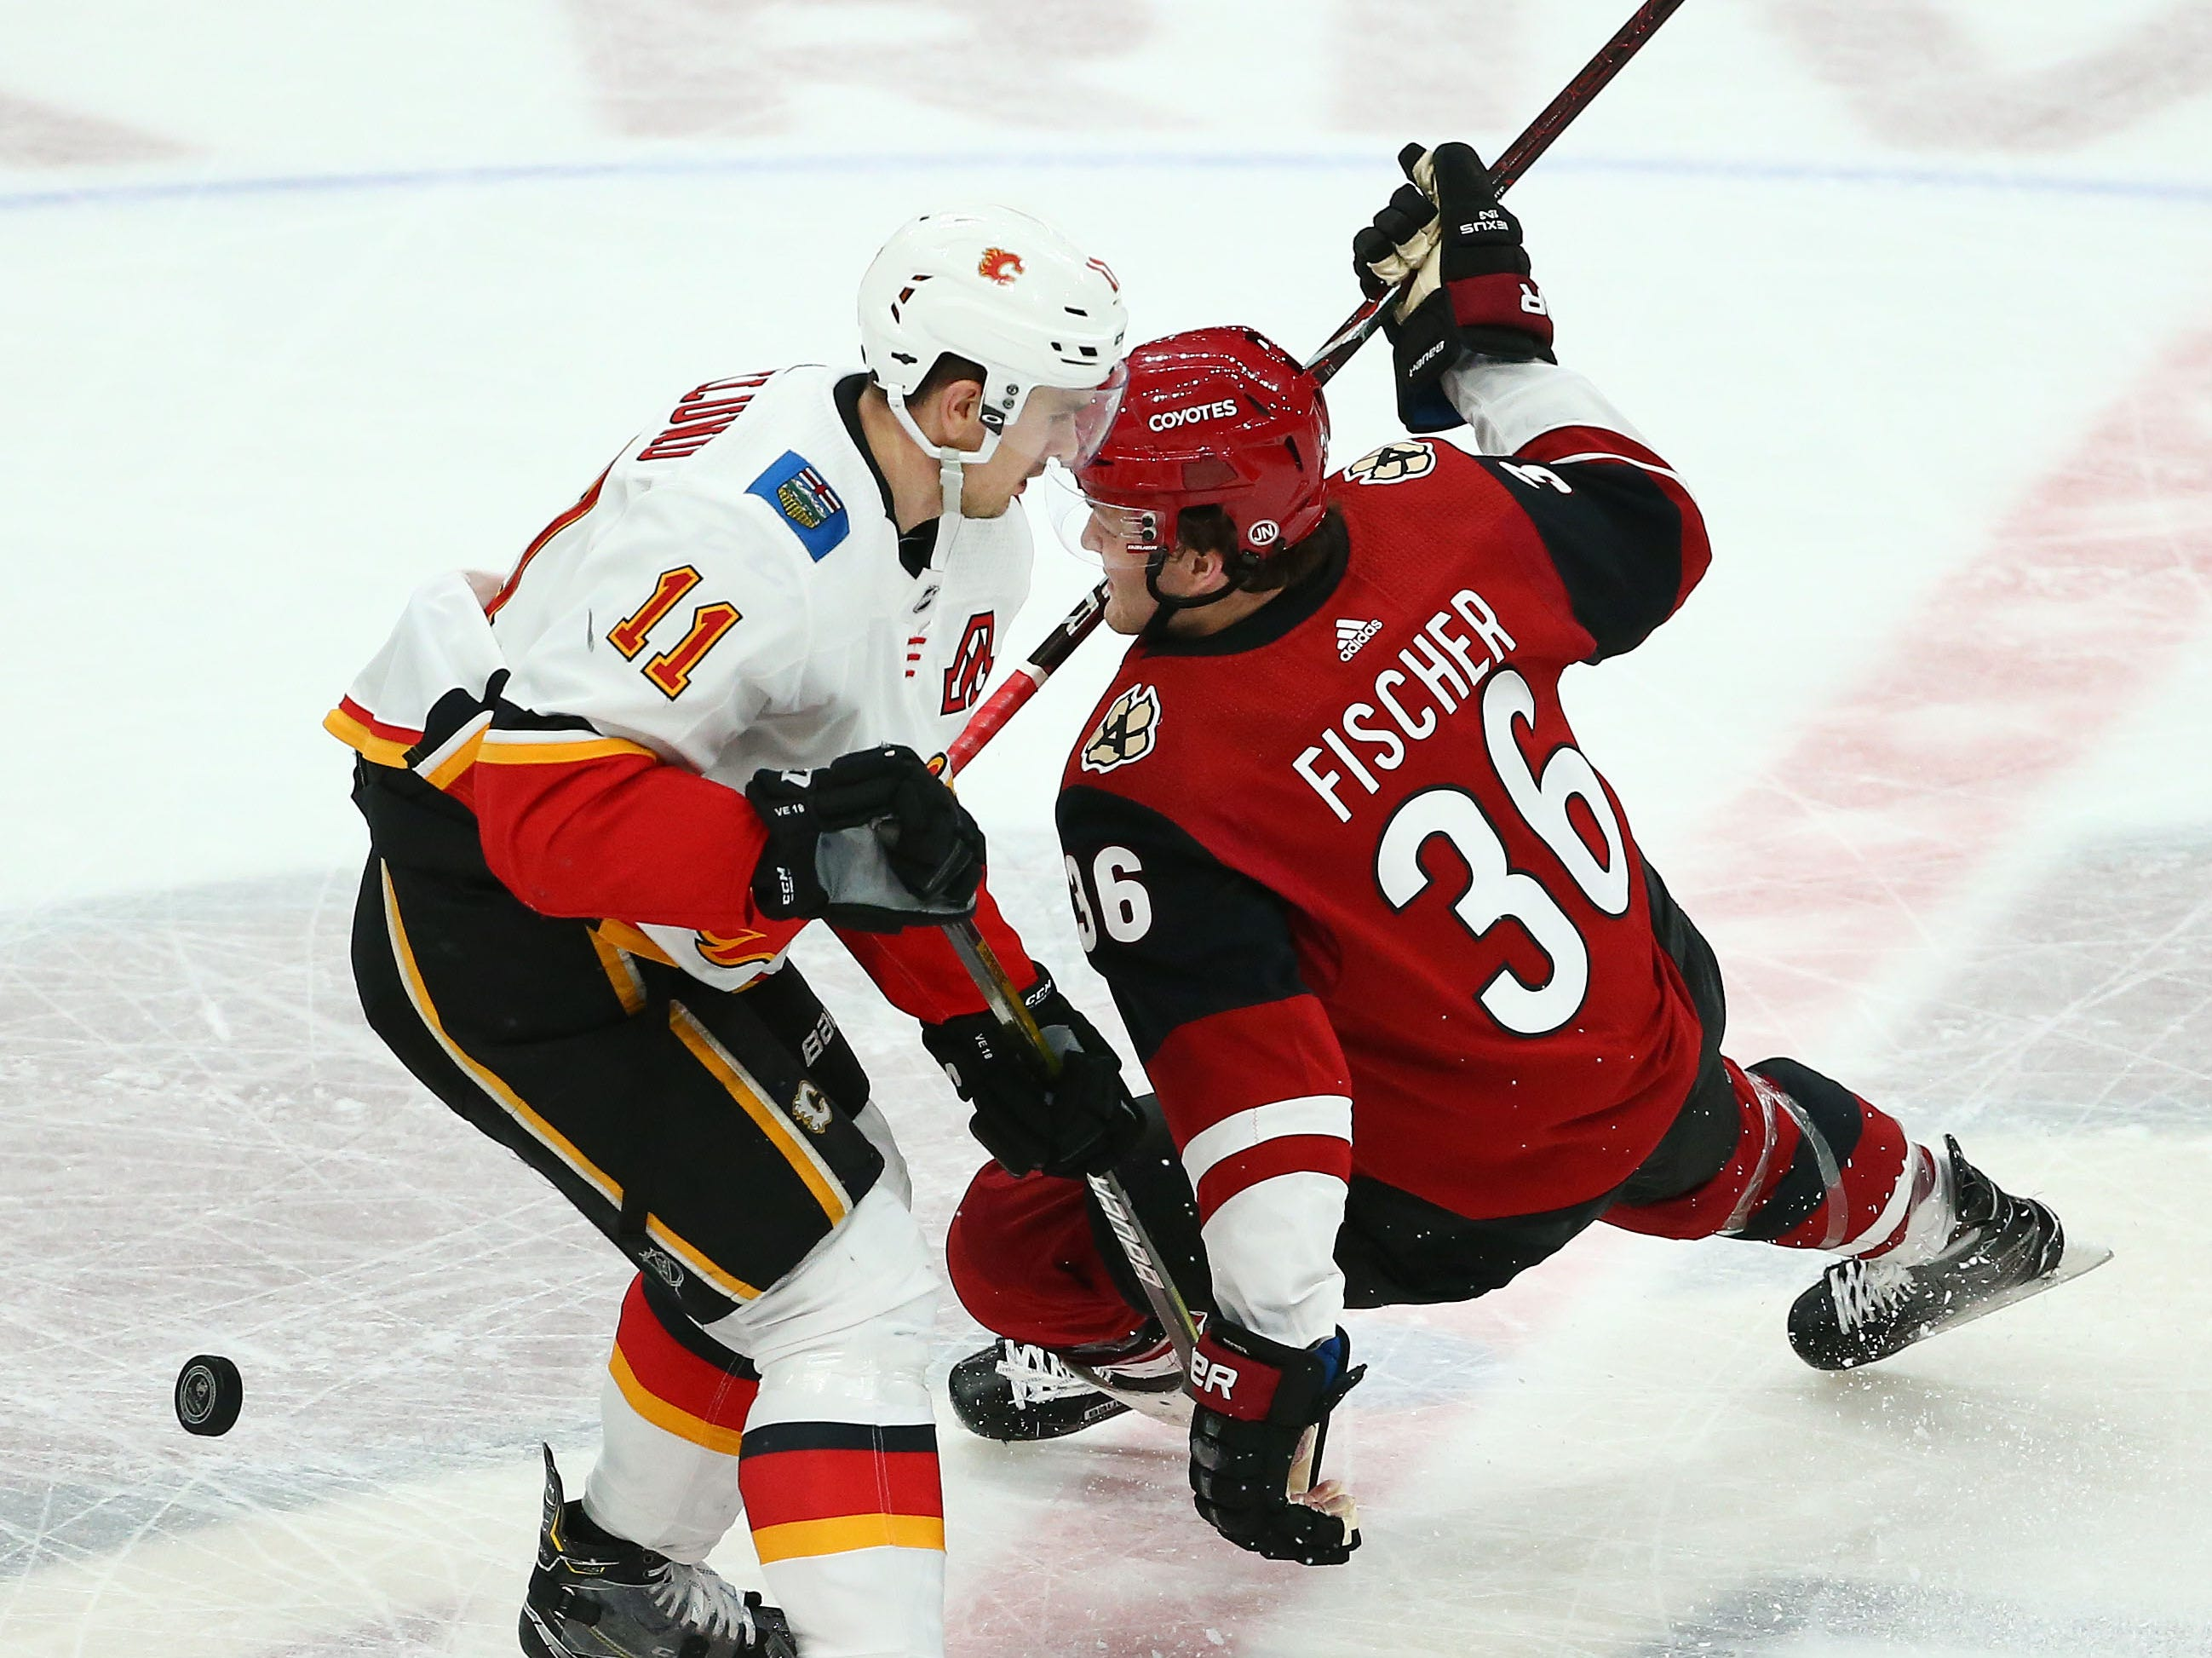 Calgary Flames center Mikael Backlund (11) cross-checks Arizona Coyotes right wing Christian Fischer (36) in the first period on Mar. 7, 2019, at Gila River Arena in Glendale, Ariz.